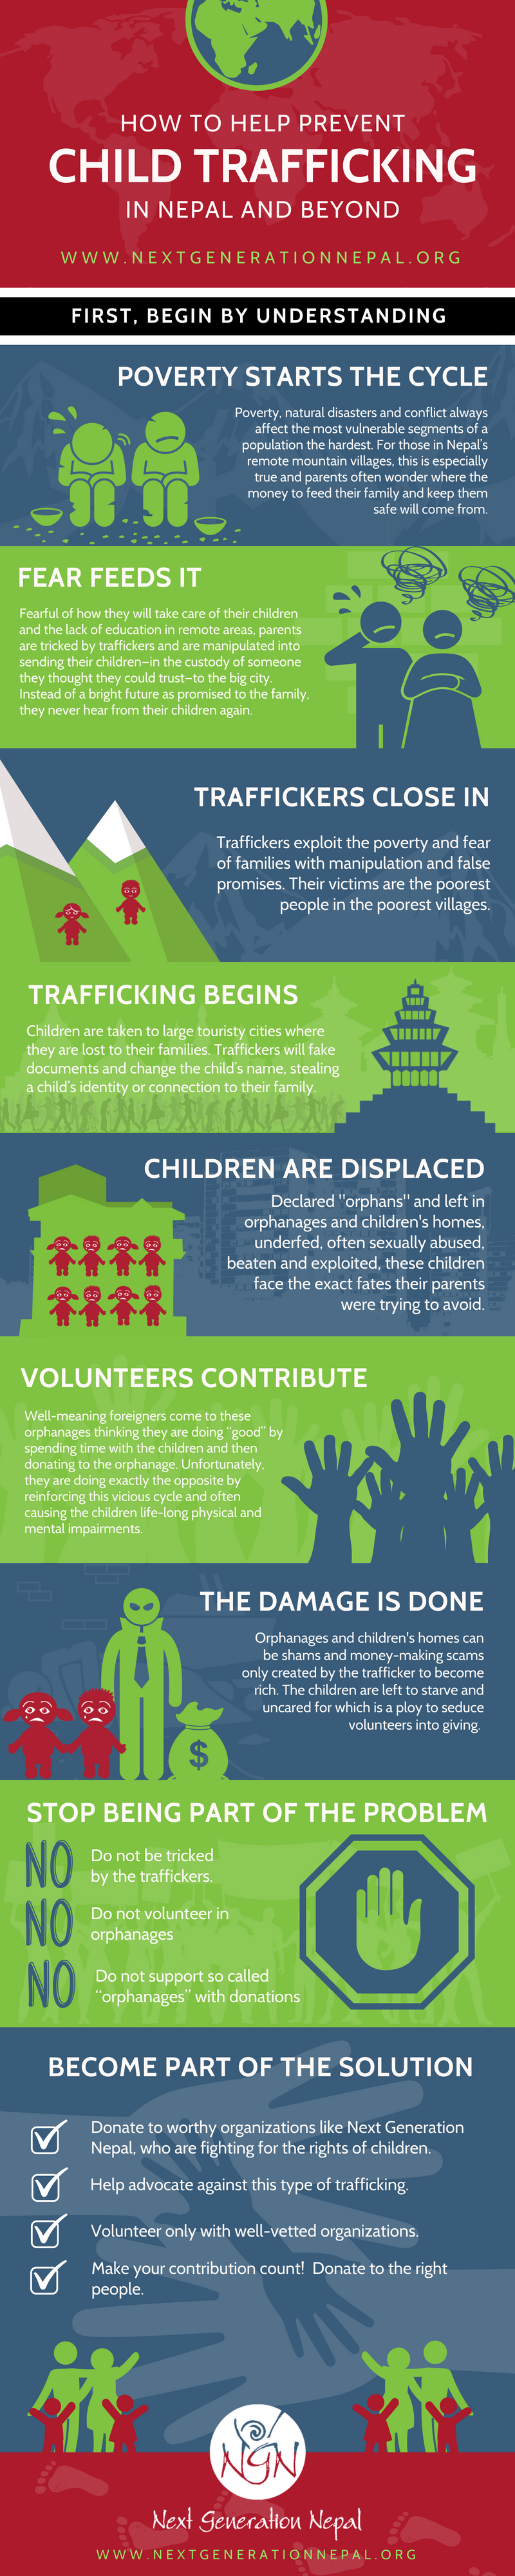 How to Help Prevent Child Trafficking: An Infographic by Next Generation Nepal